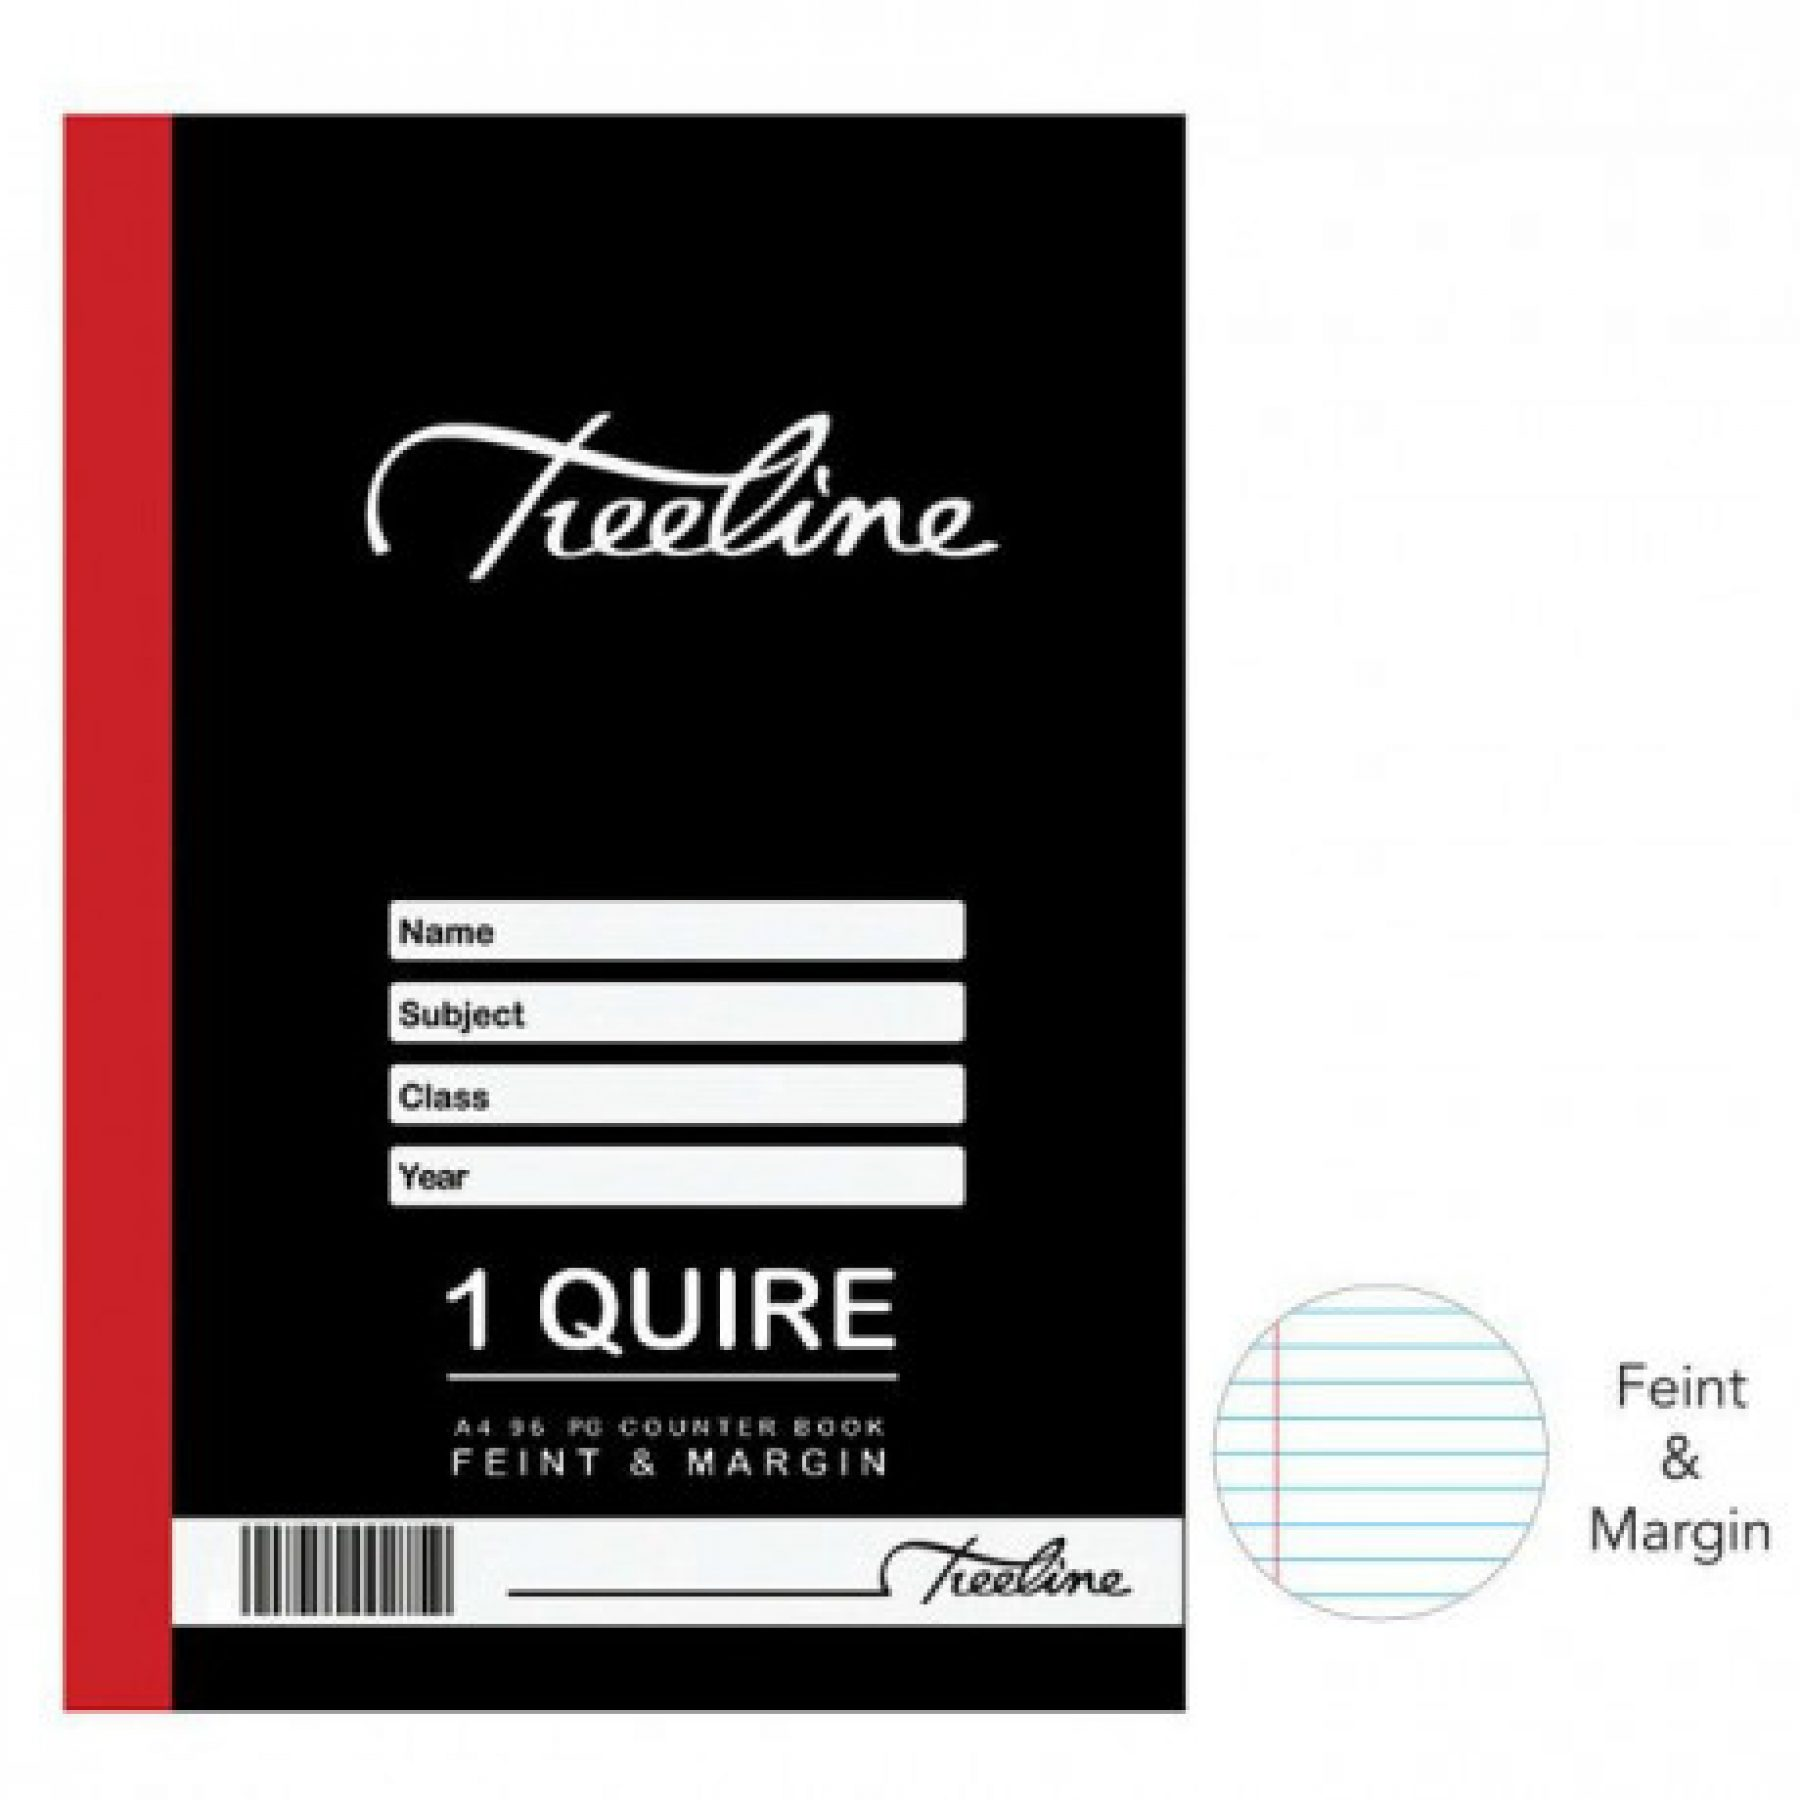 treeline-a4-counter-book-1-quire-feint-and-margin-96-Page